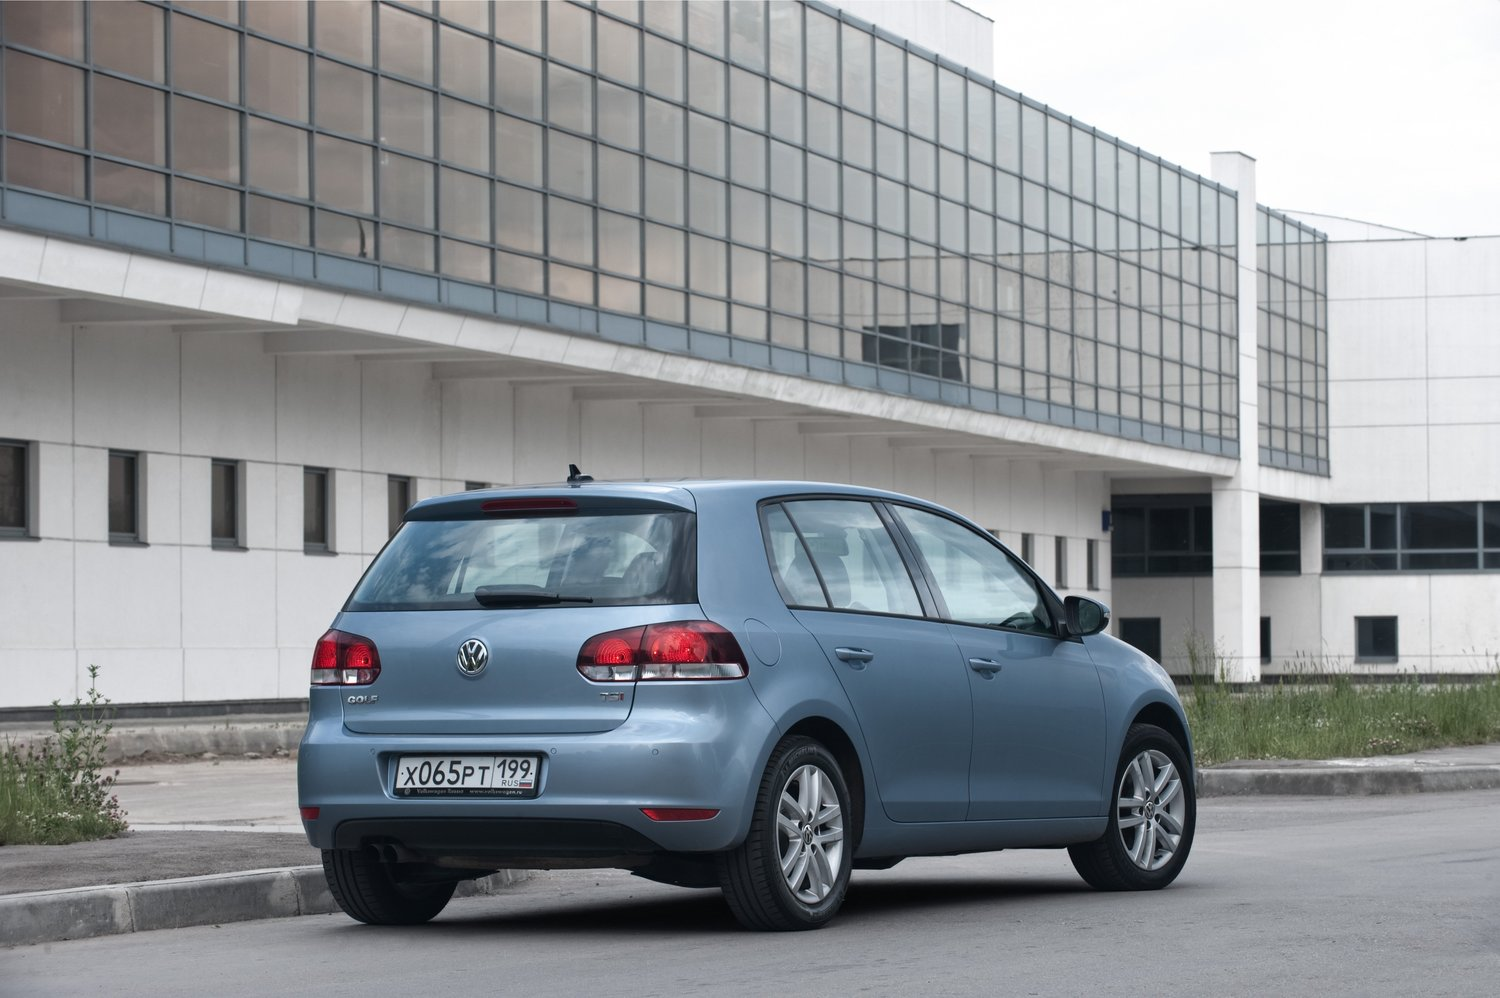 хэтчбек 5 дв. Volkswagen Golf 2009 - 2012г выпуска модификация 1.4 AMT (160 л.с.)